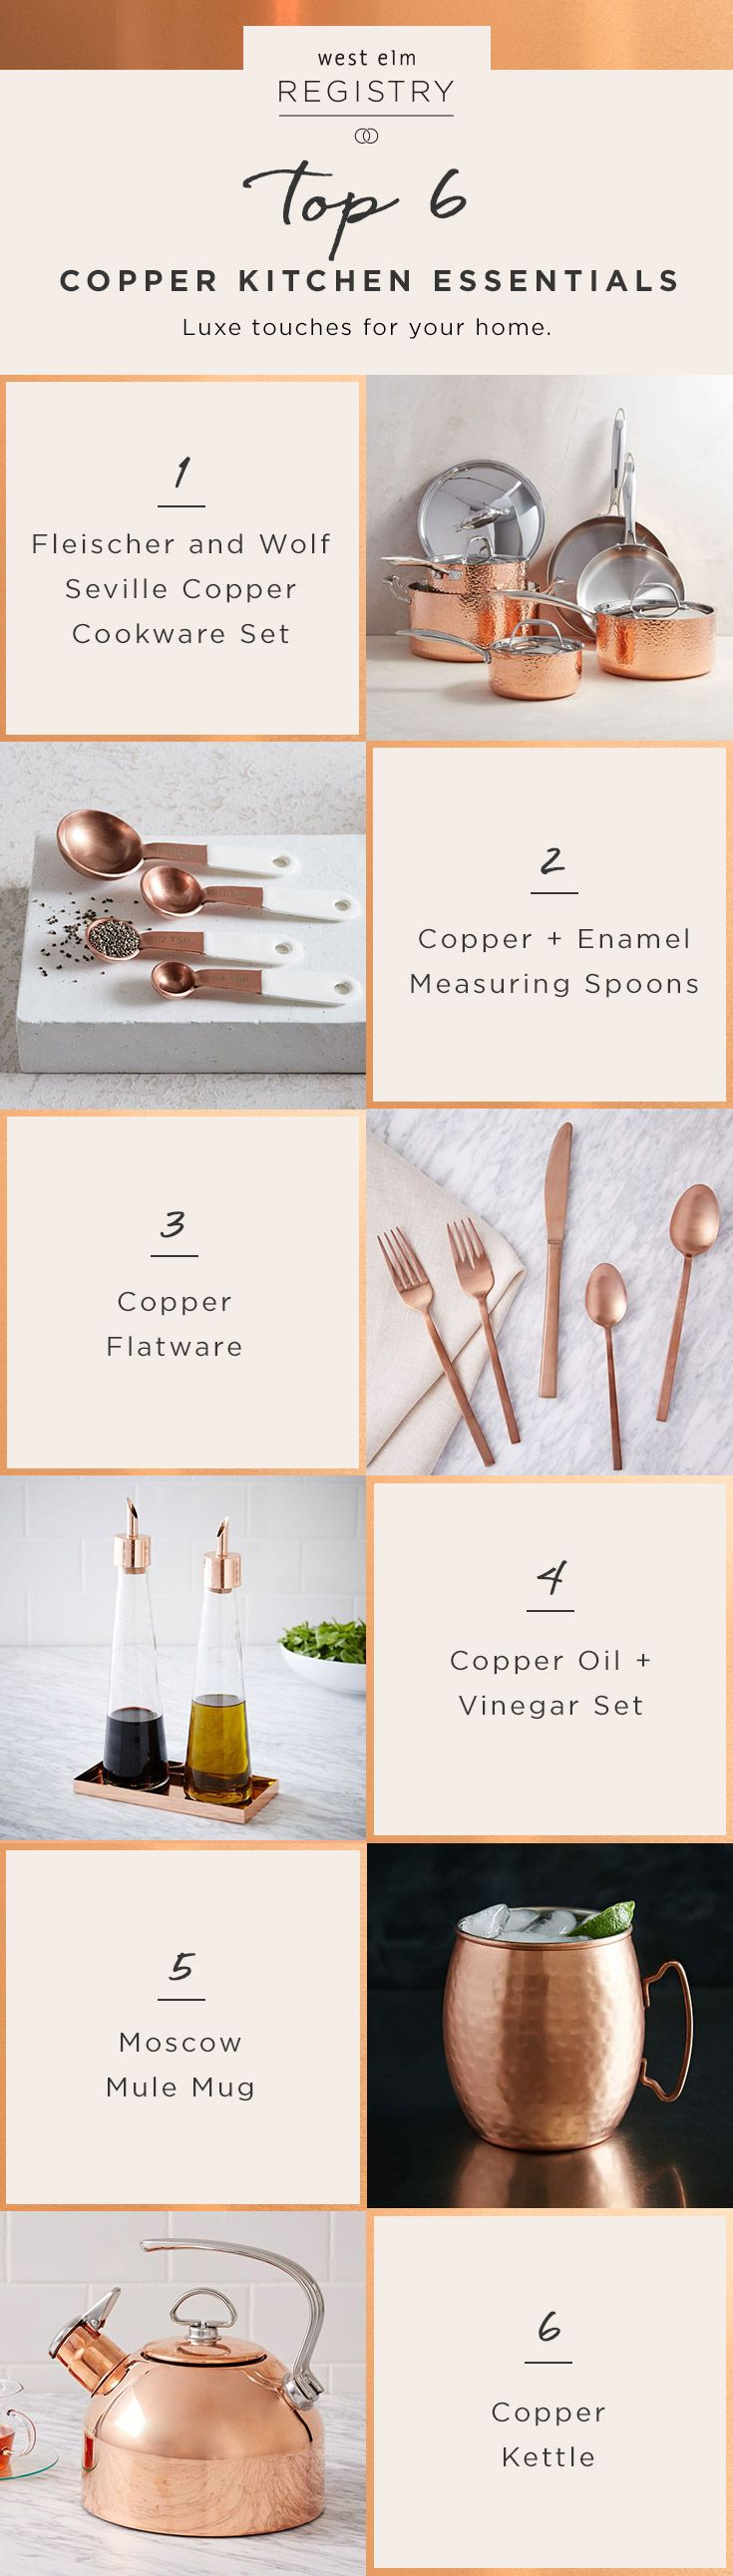 Tying the knot? These copper kitchen essentials are wedding registry must-haves! Head over to westelm.com to get your registry started.